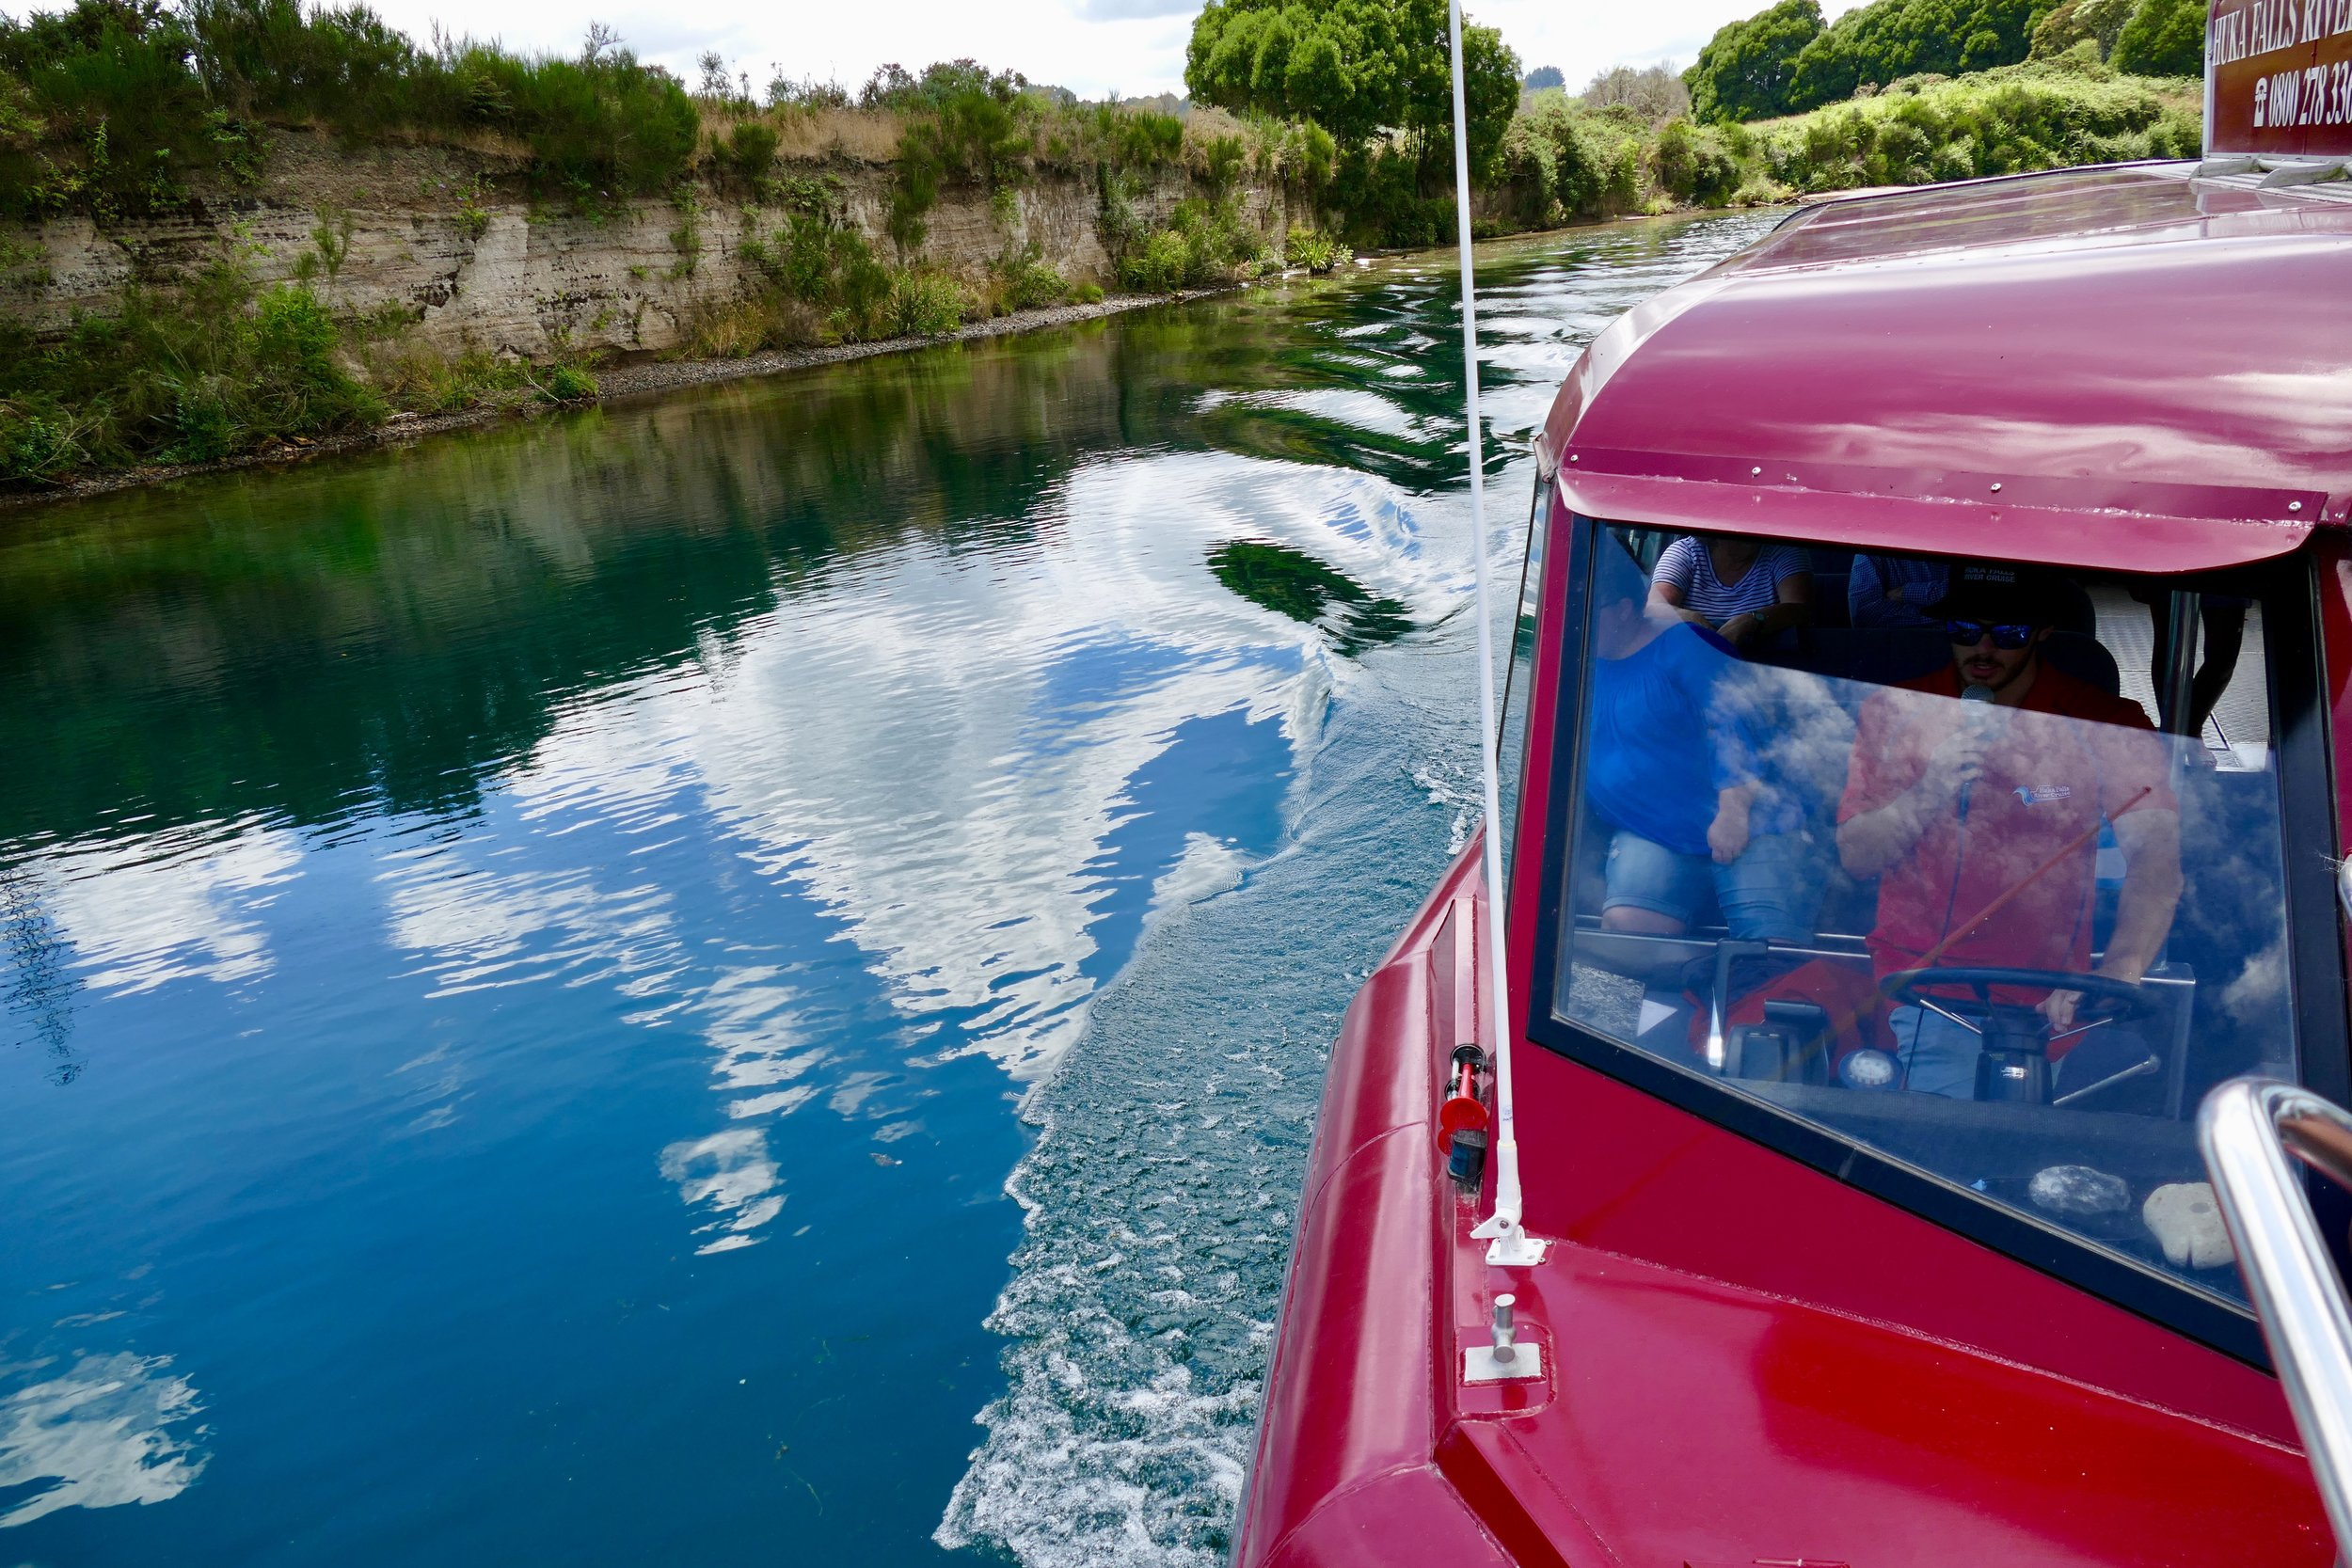 Our ride on the Huka Falls River Cruise